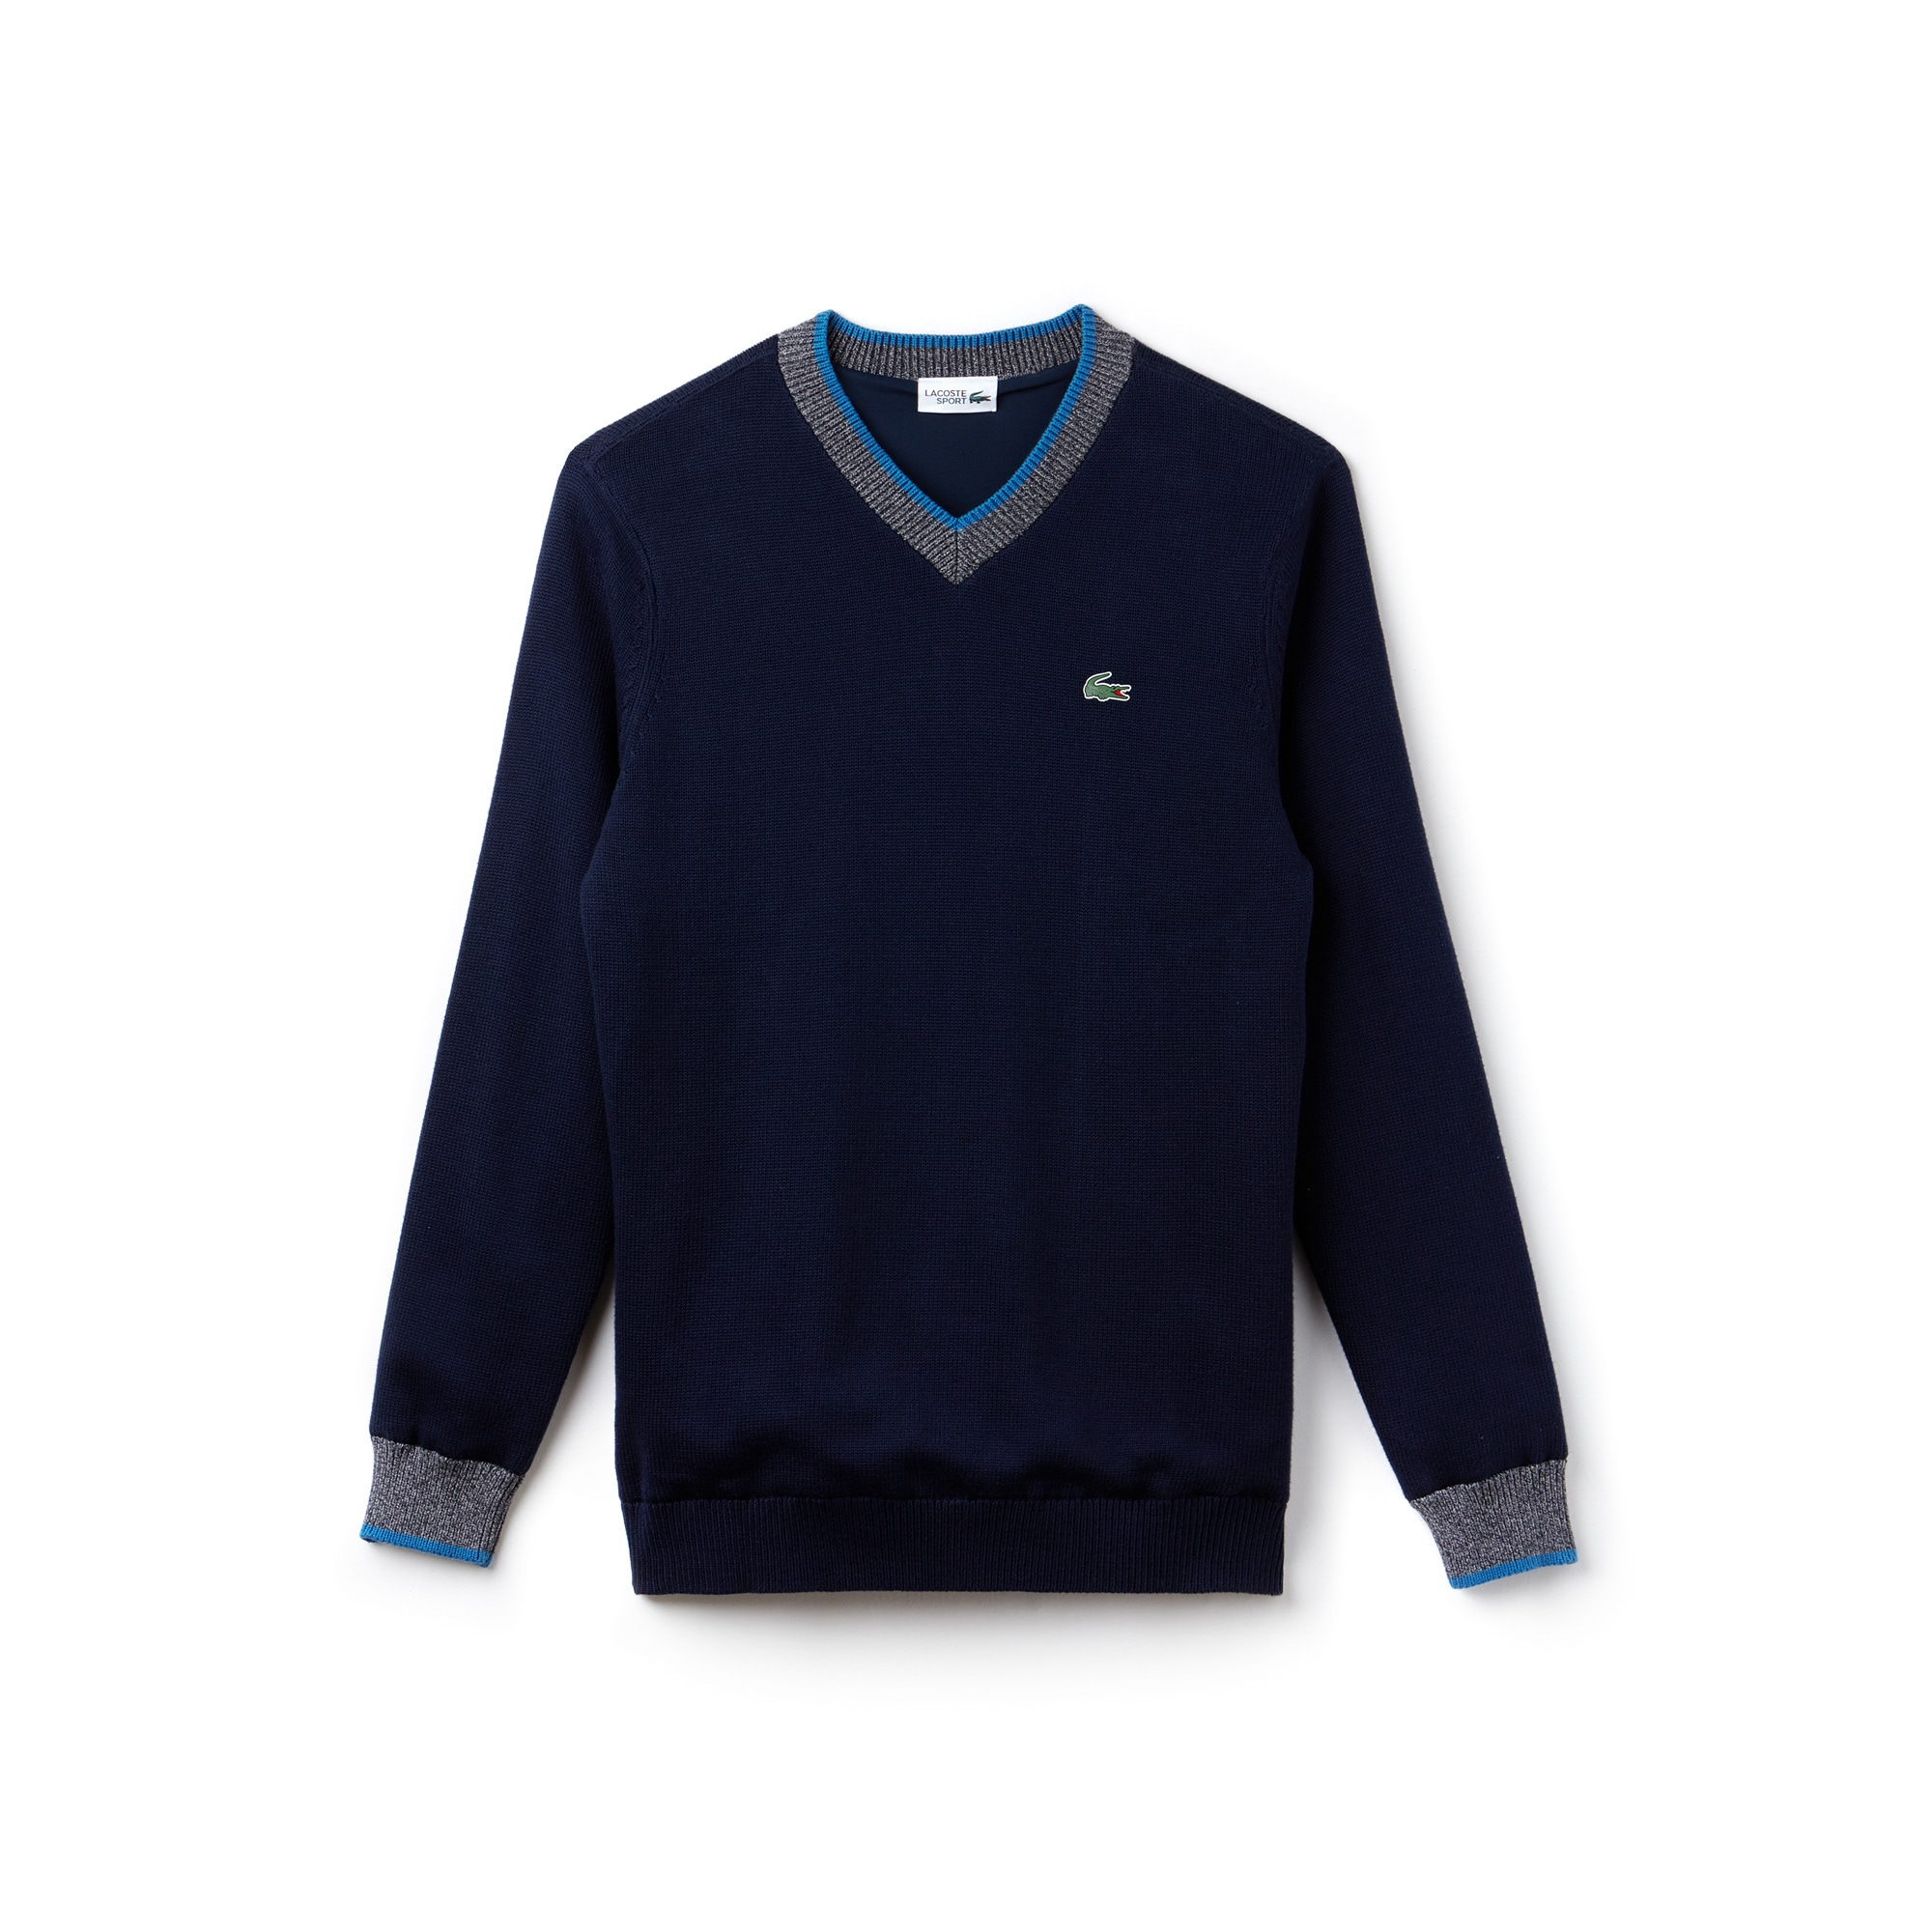 Men's Lacoste SPORT V-neck Technical Cotton Knit Golf Sweater